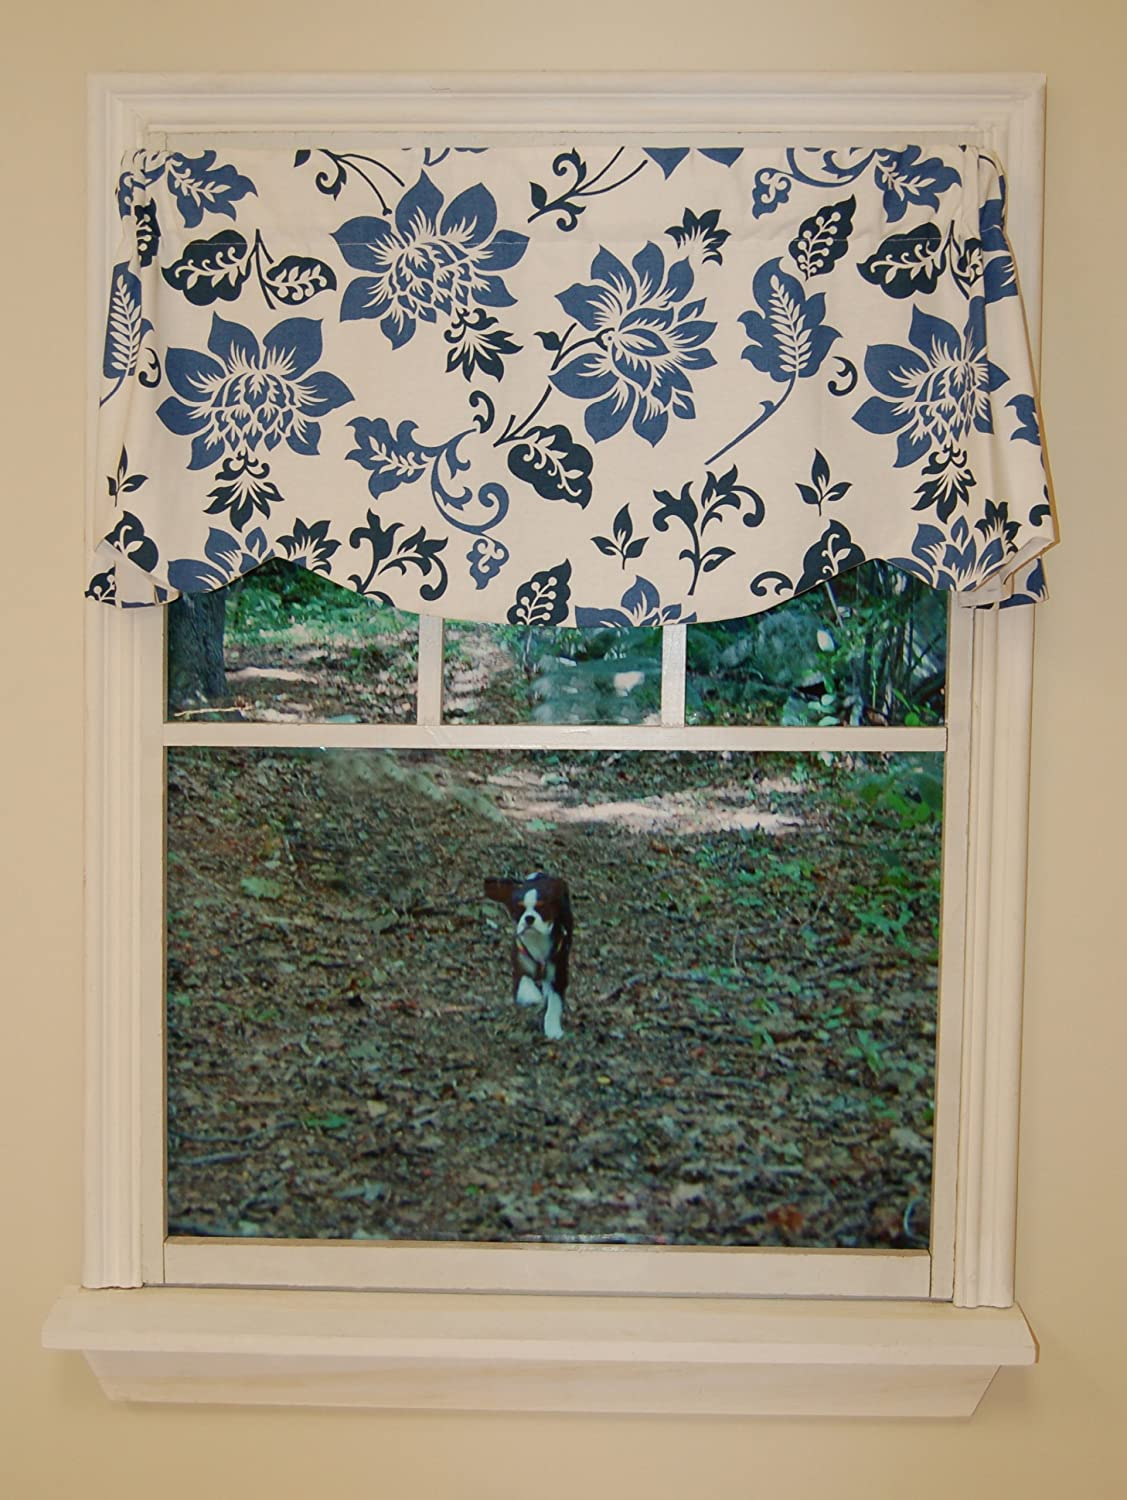 amazon com curtain chic jacobean abstract beacon valance delft